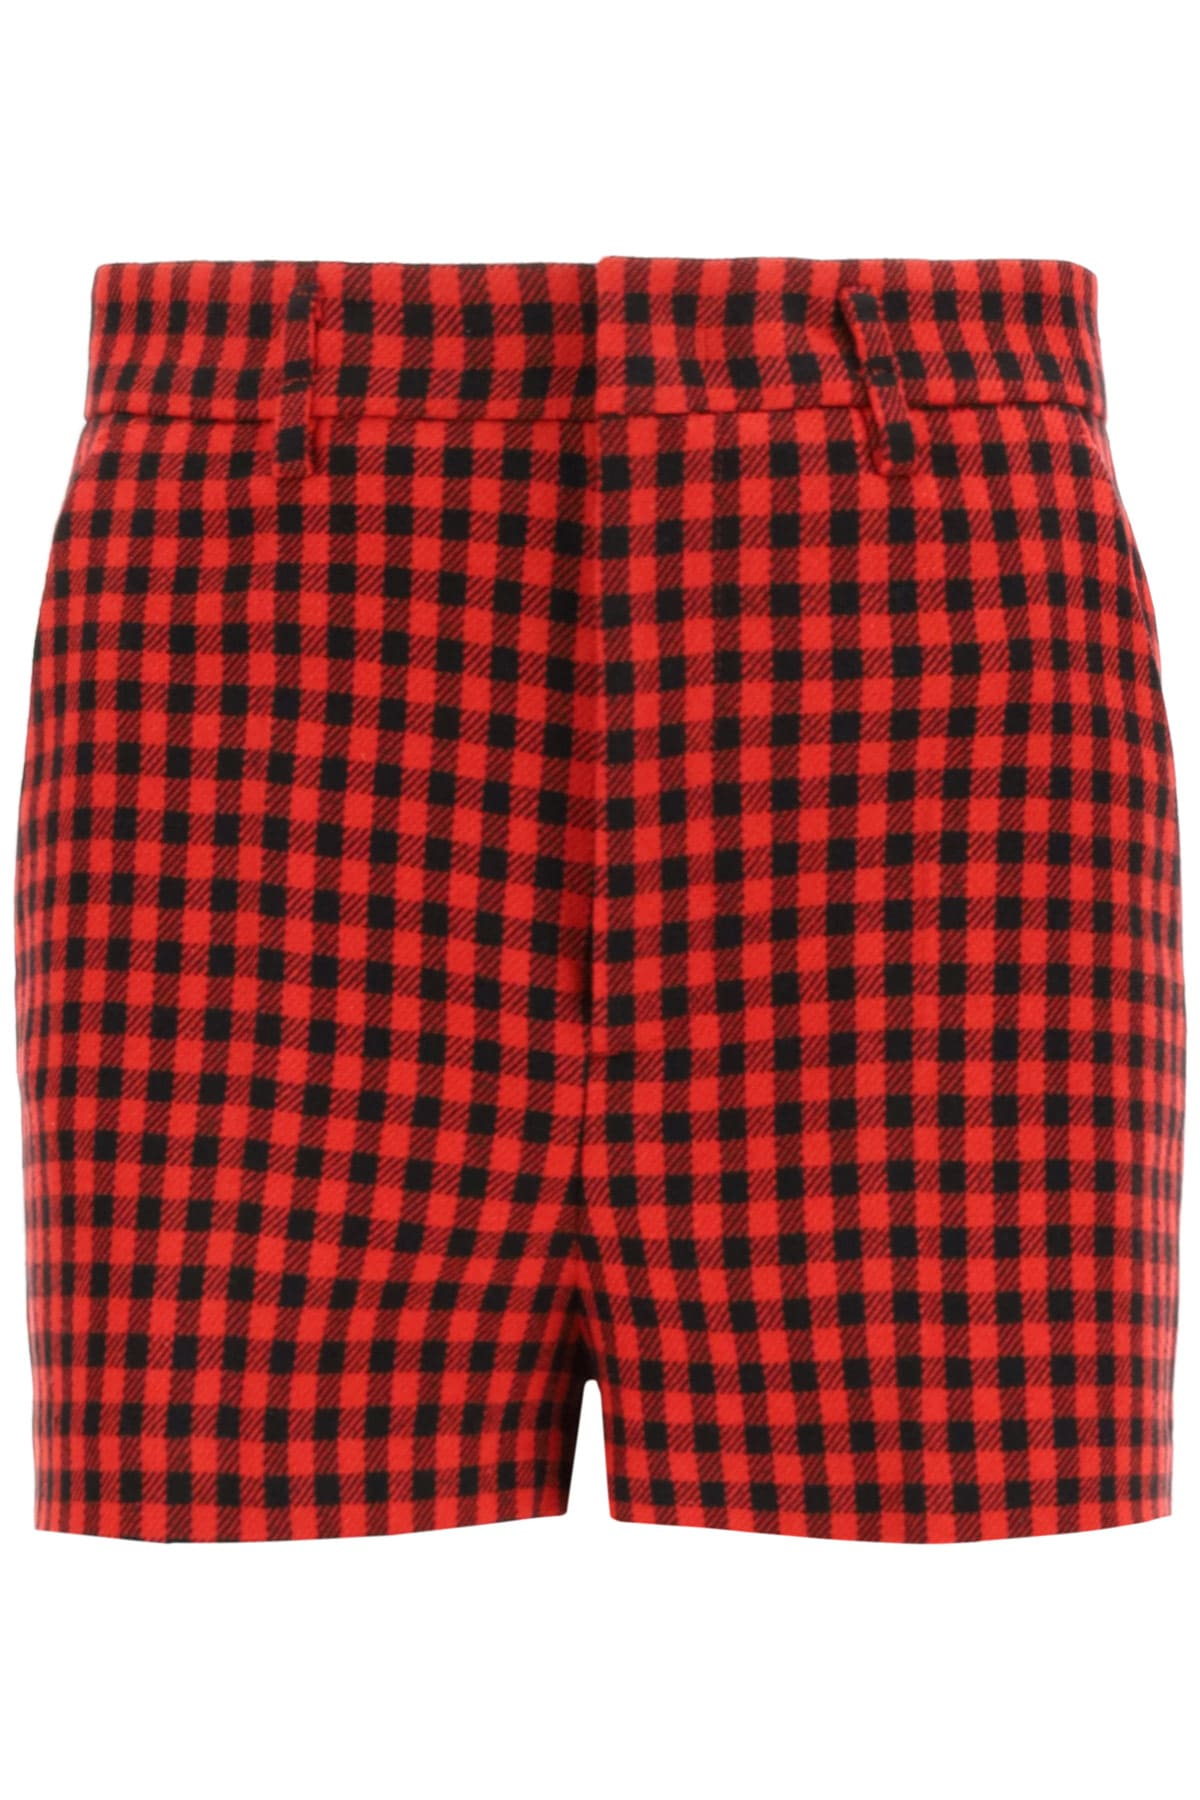 Red Valentino shorts in gingham-patterned wool and cotton blend fabric. They feature a regular fit with ironed crease, concealed zip and hook closure, slash front pockets, welt rear pockets, unlined interior. The model is 177 cm tall and wears a size IT 38. Composition: 38% cotone, 34% acrilico, 17% poliestere, 11% lana